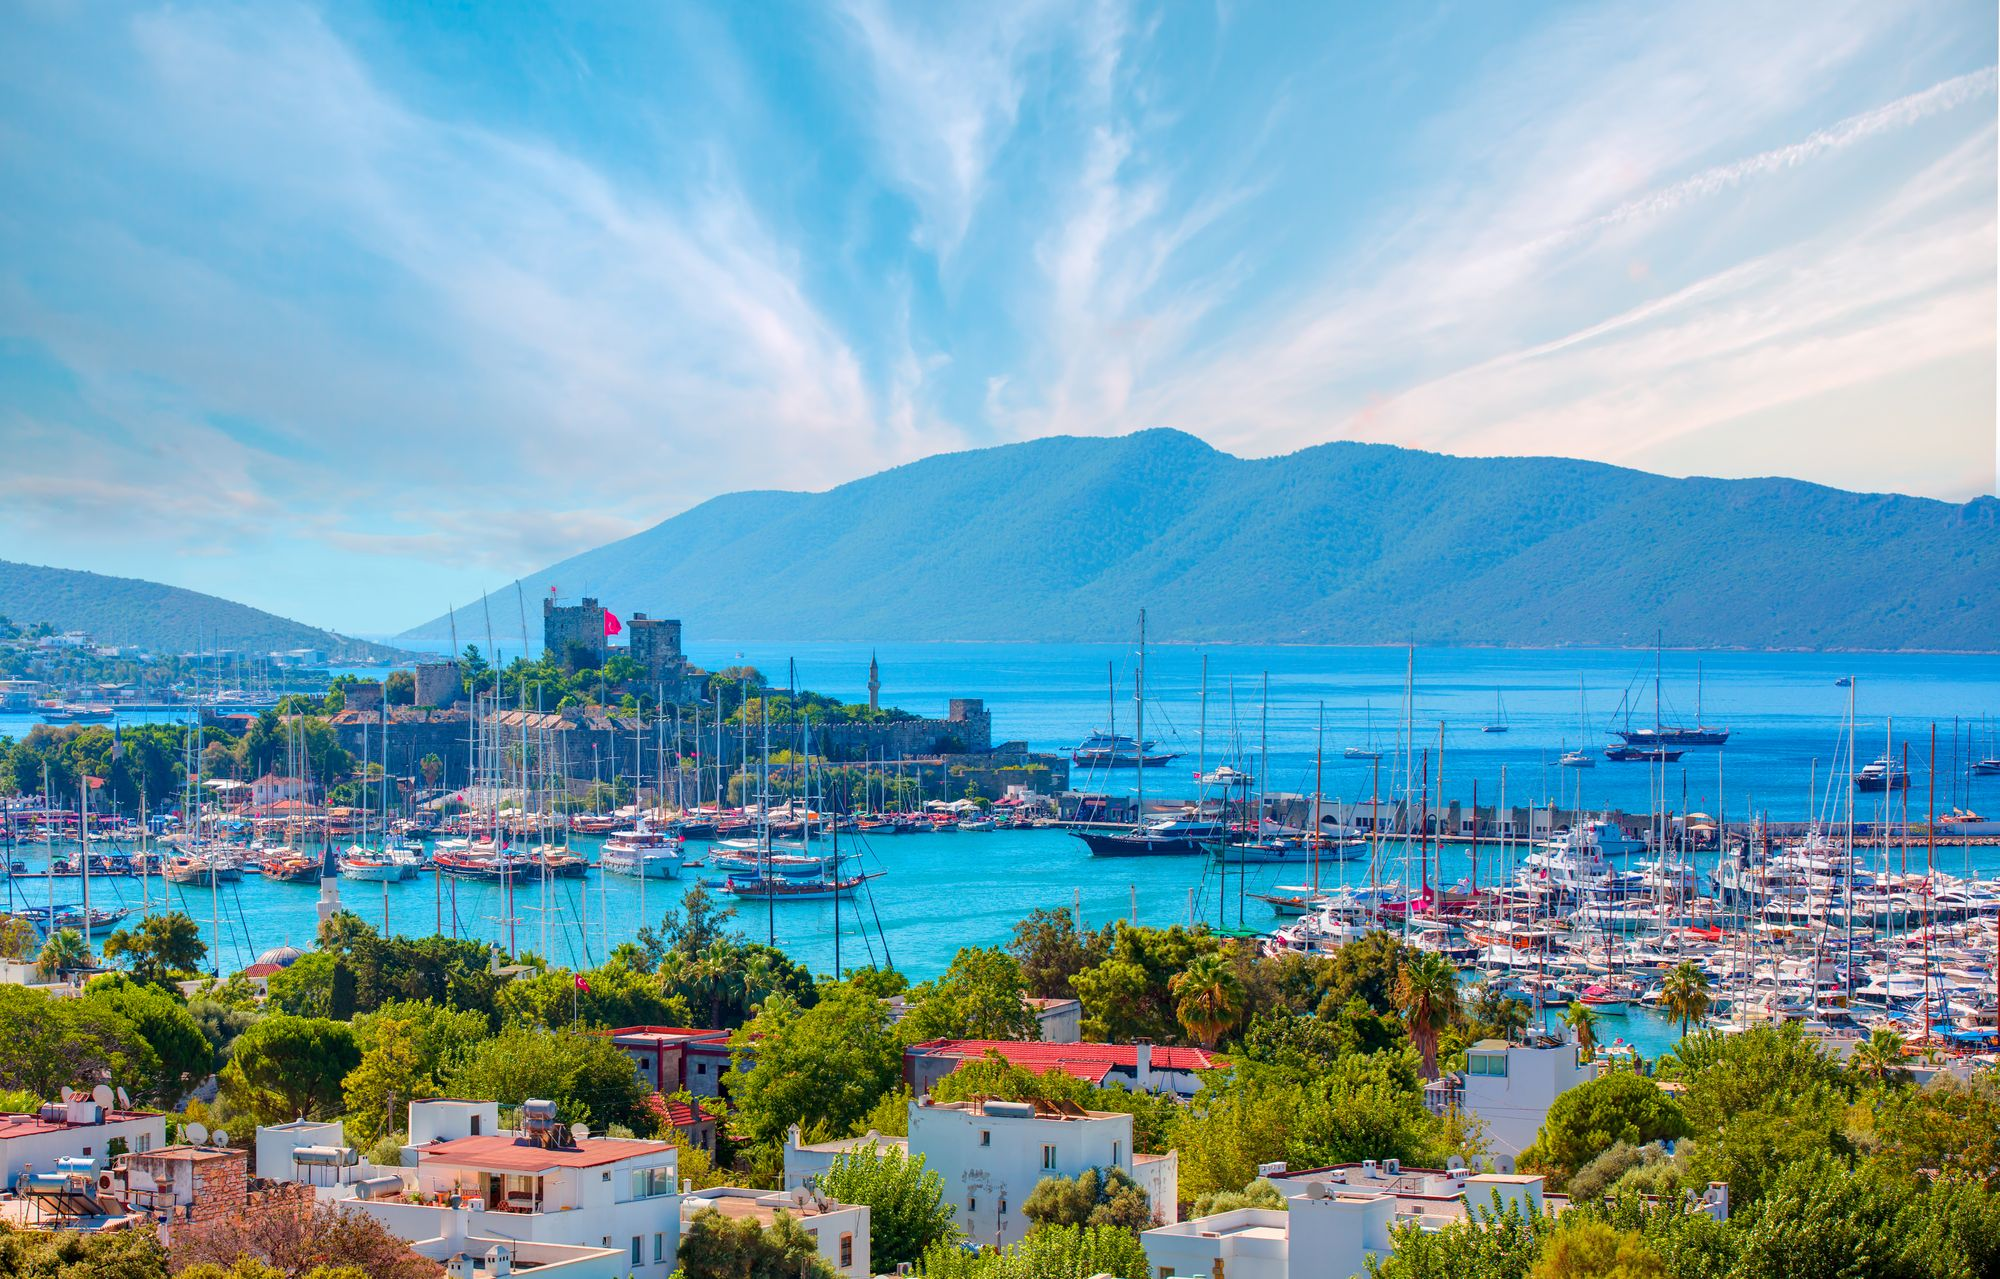 Saint Peter Castle and marina in Bodrum